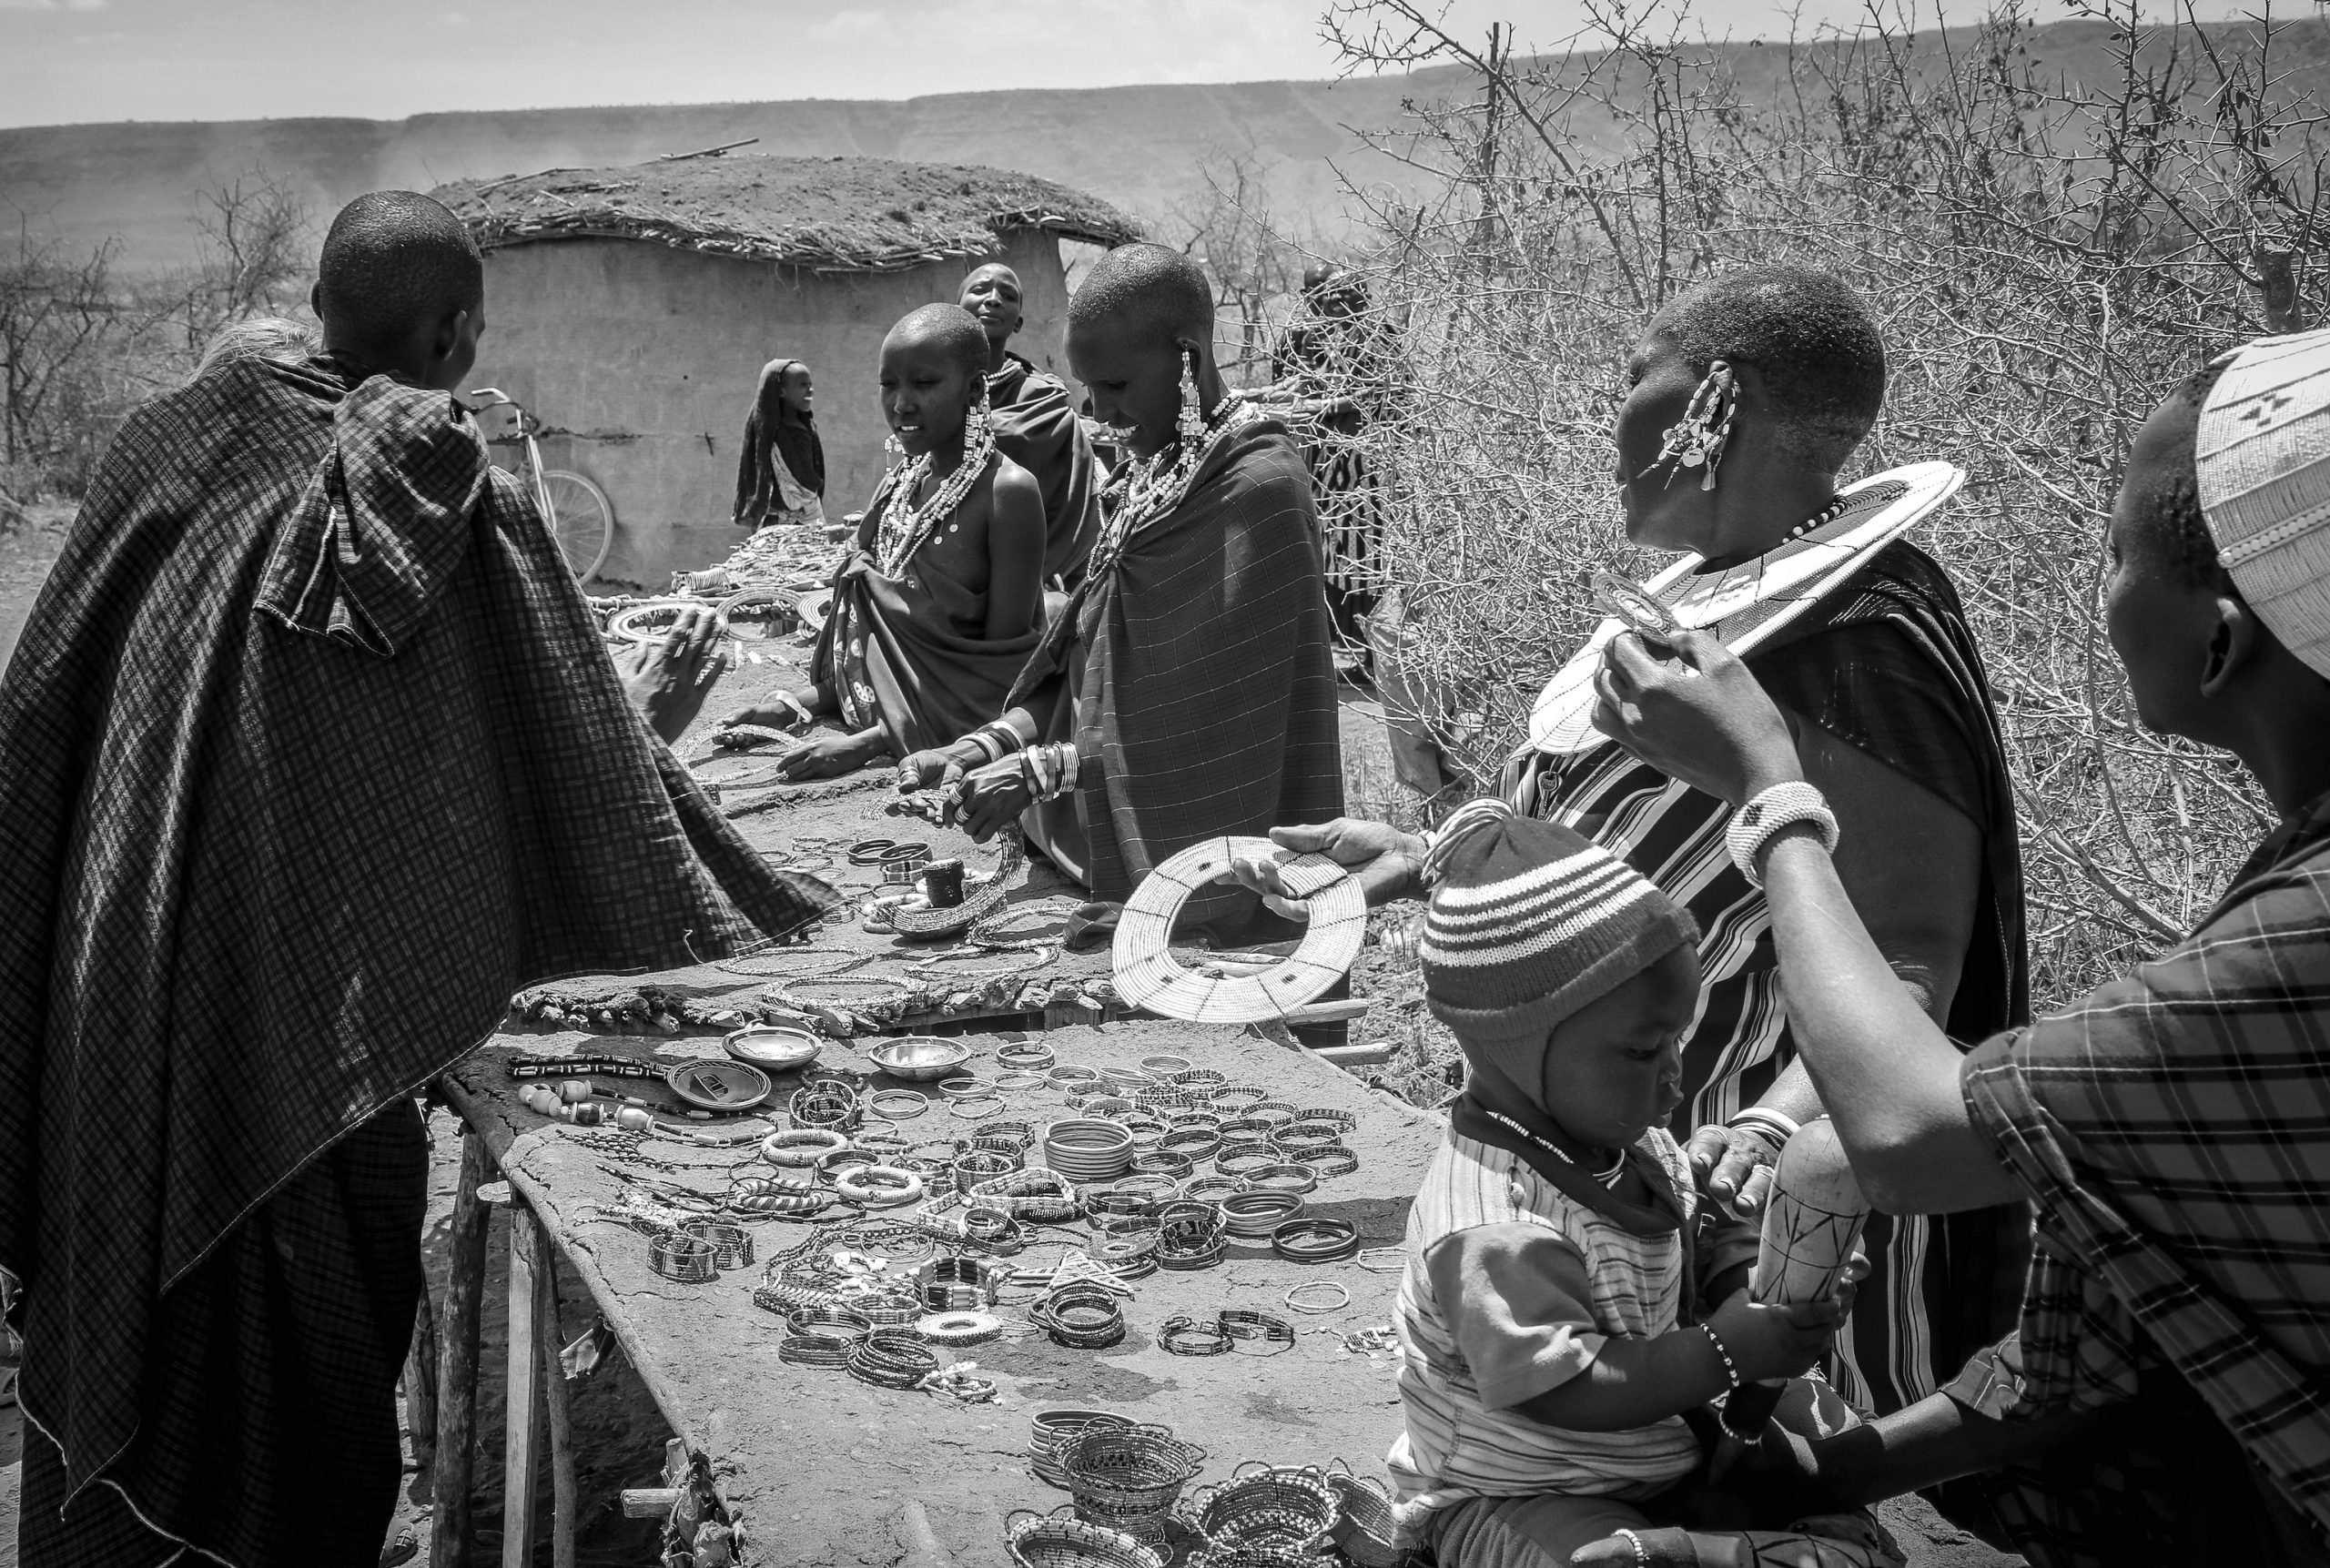 Maasai women selling necklaces and their beauty accessories